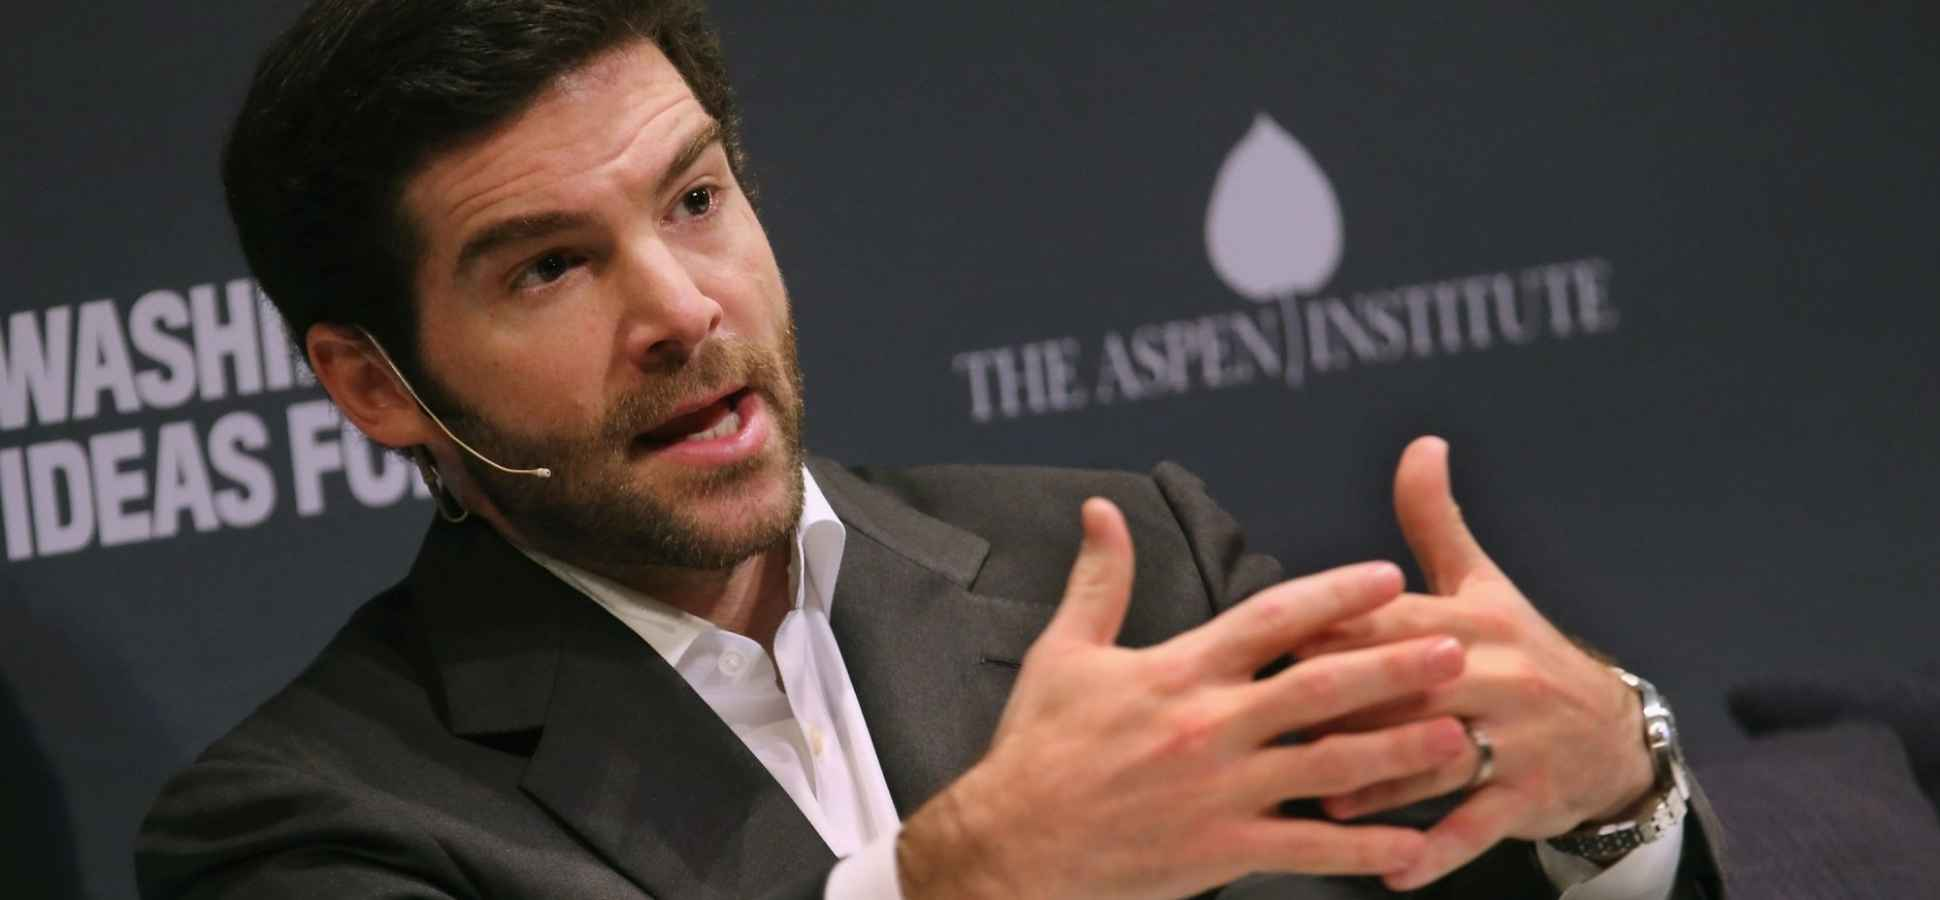 LinkedIn's CEO Jeff Weiner Just Shared Some Brilliant Career Advice